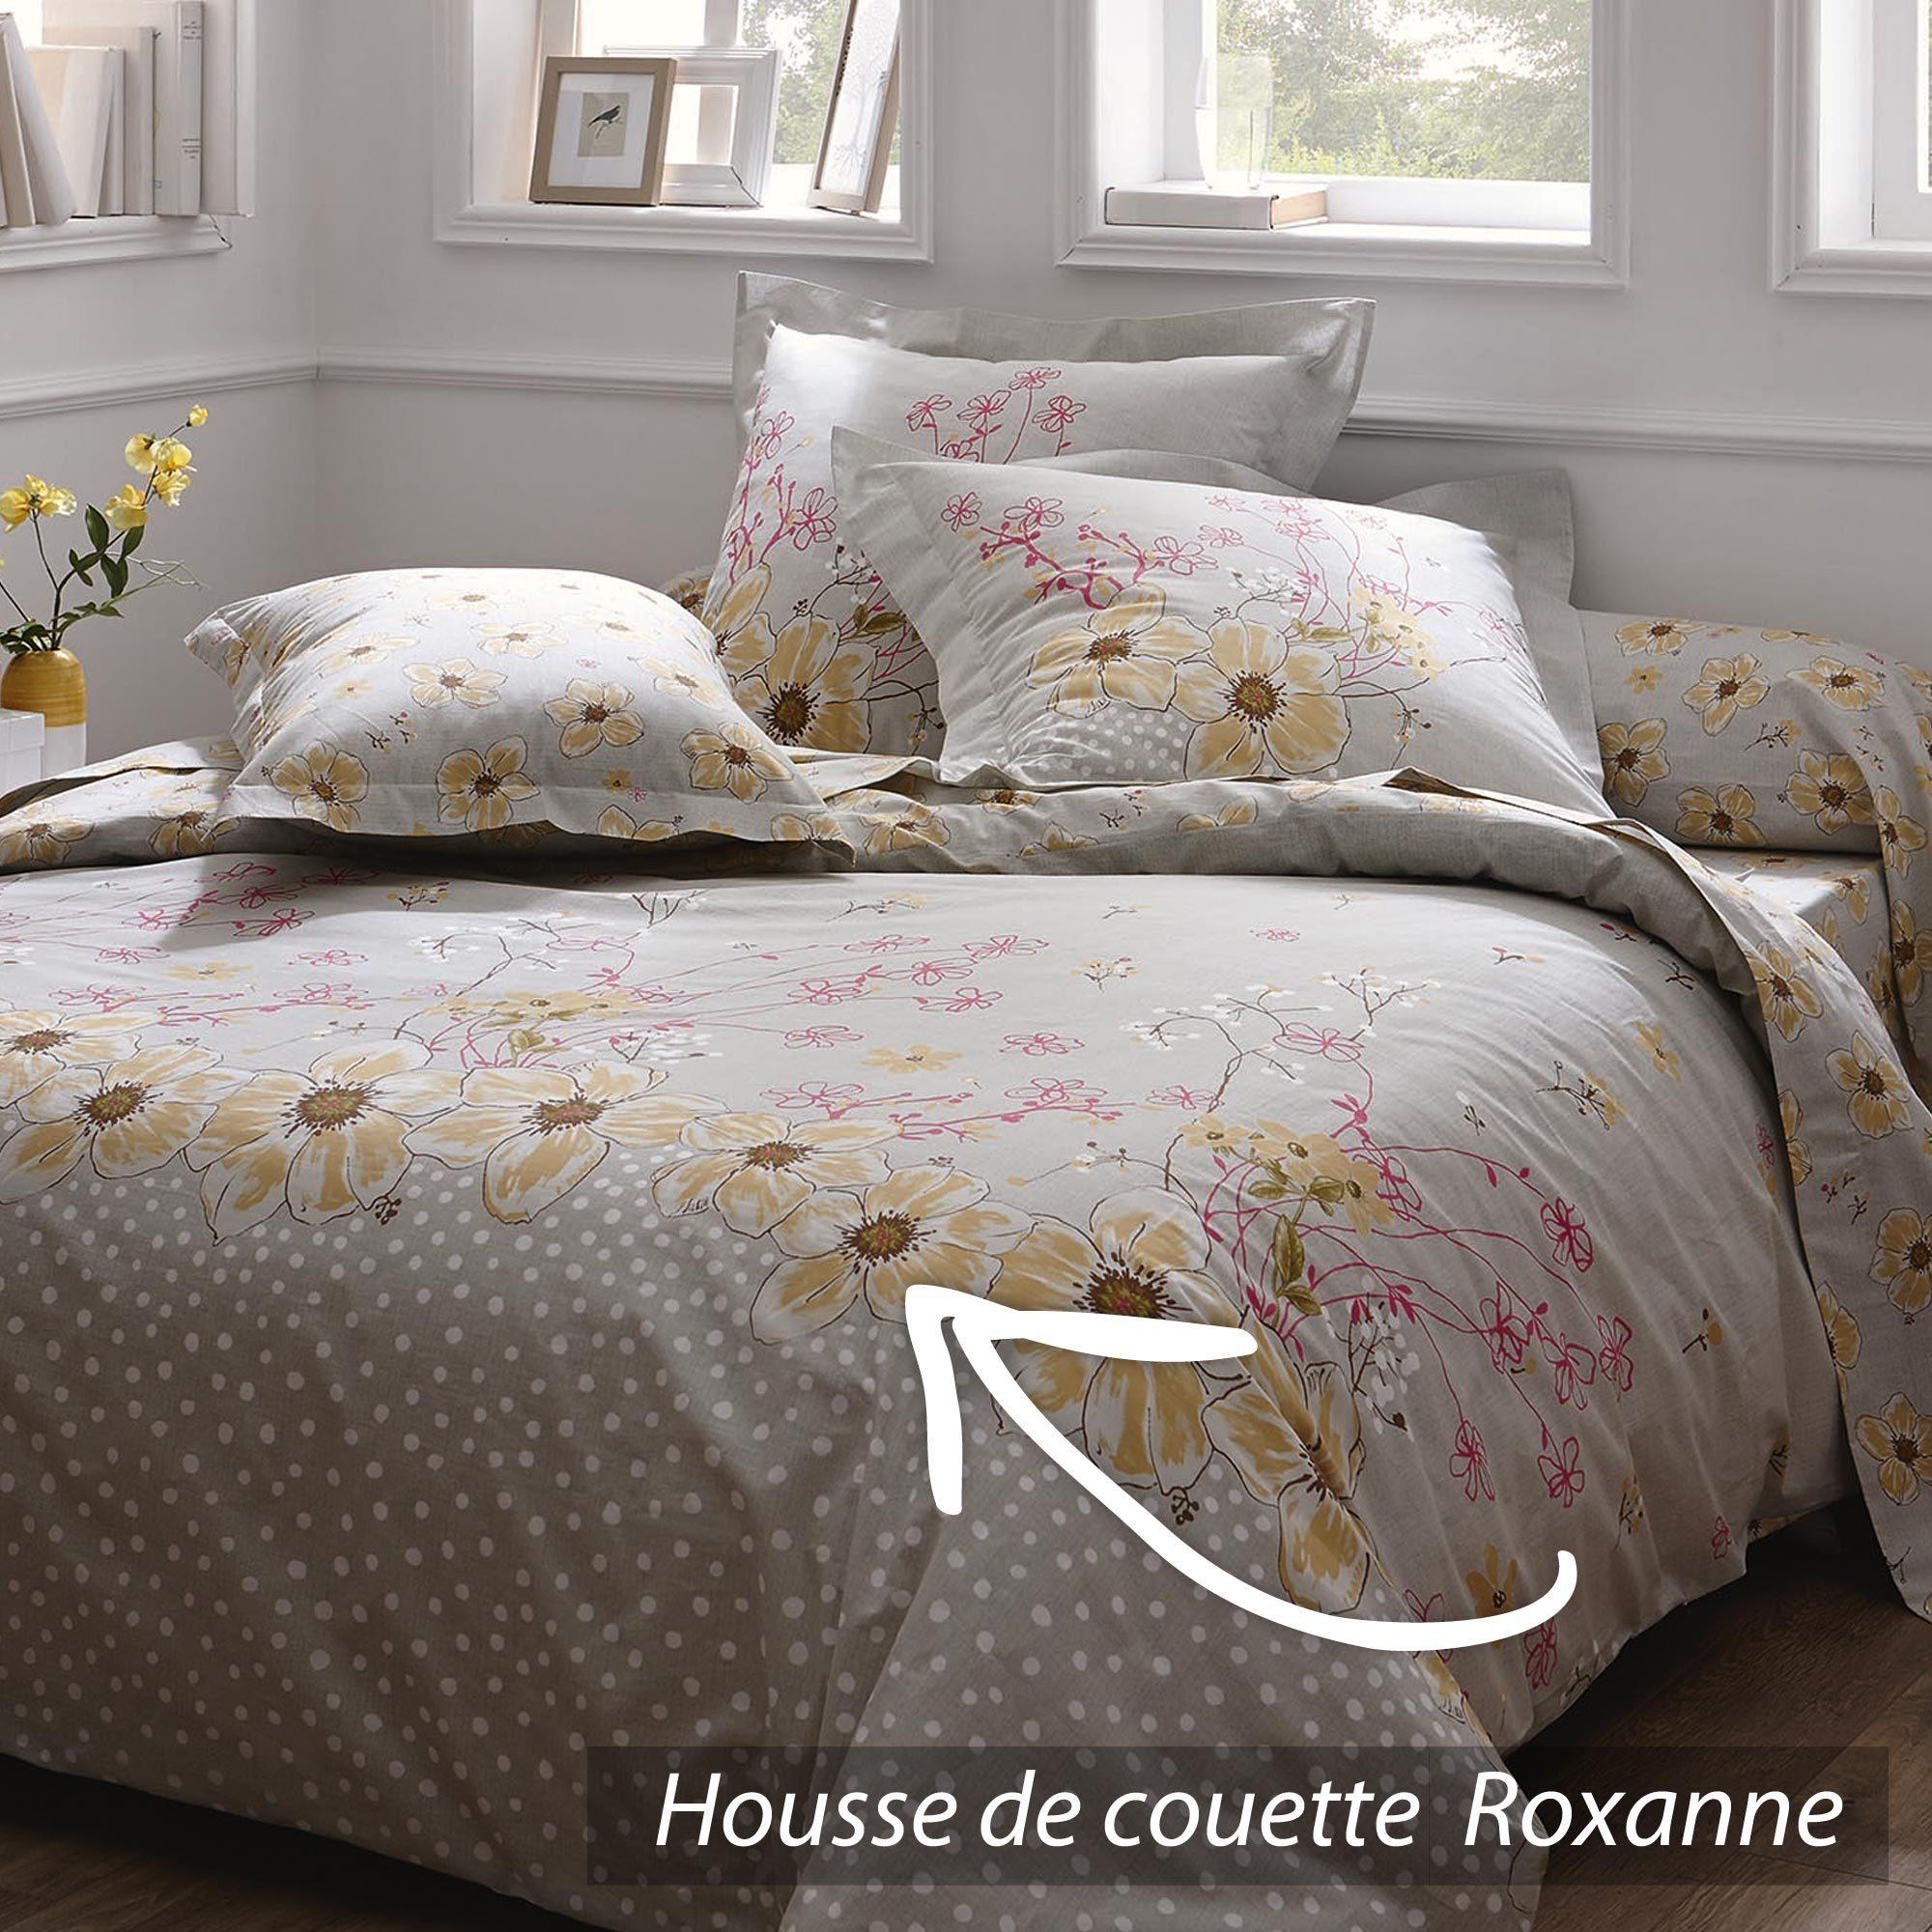 housse de couette 240x220 cm 100 coton roxanne destockage ebay. Black Bedroom Furniture Sets. Home Design Ideas